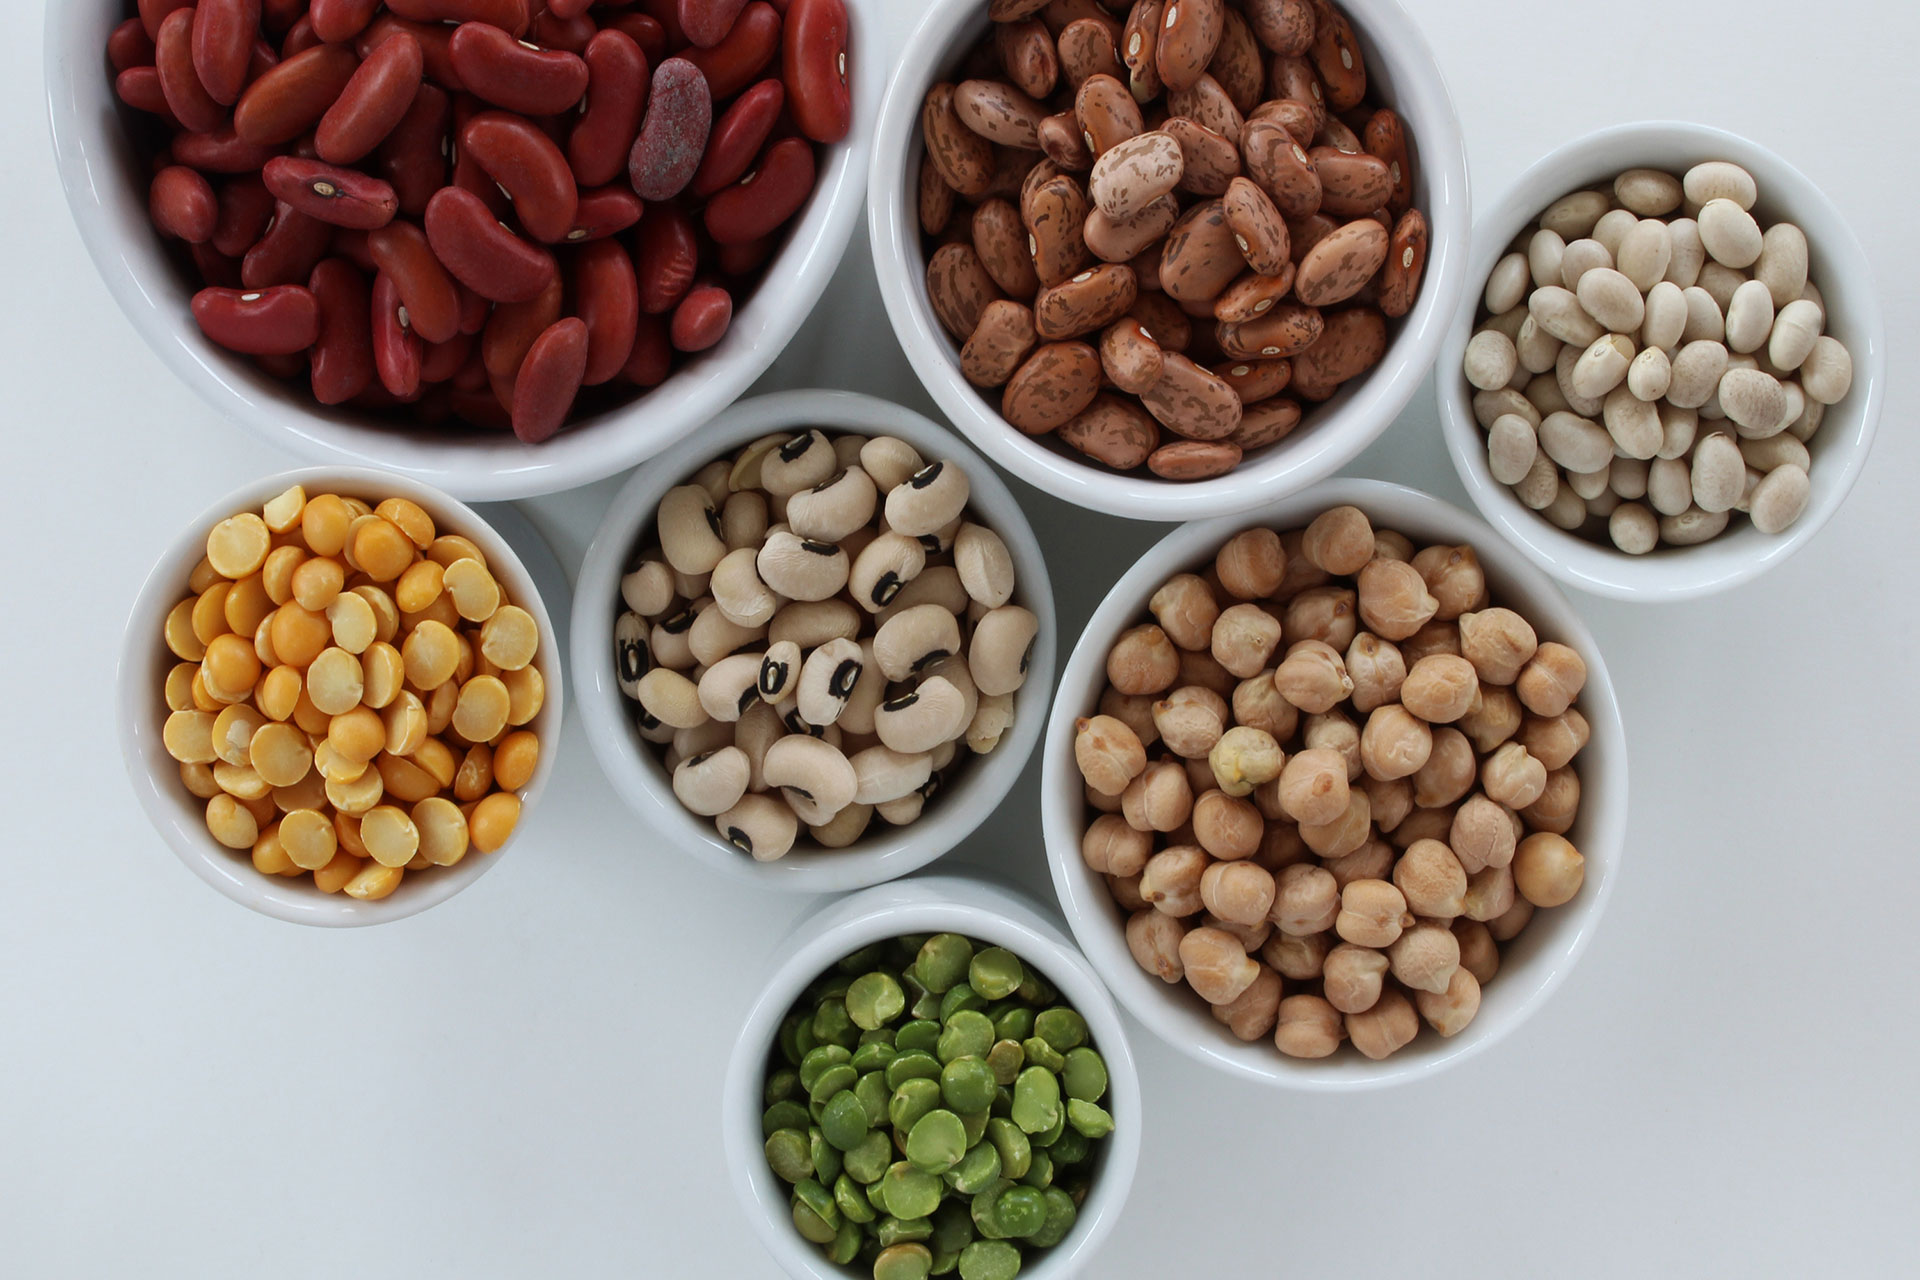 Top 5 Sources of Plant-based Protein